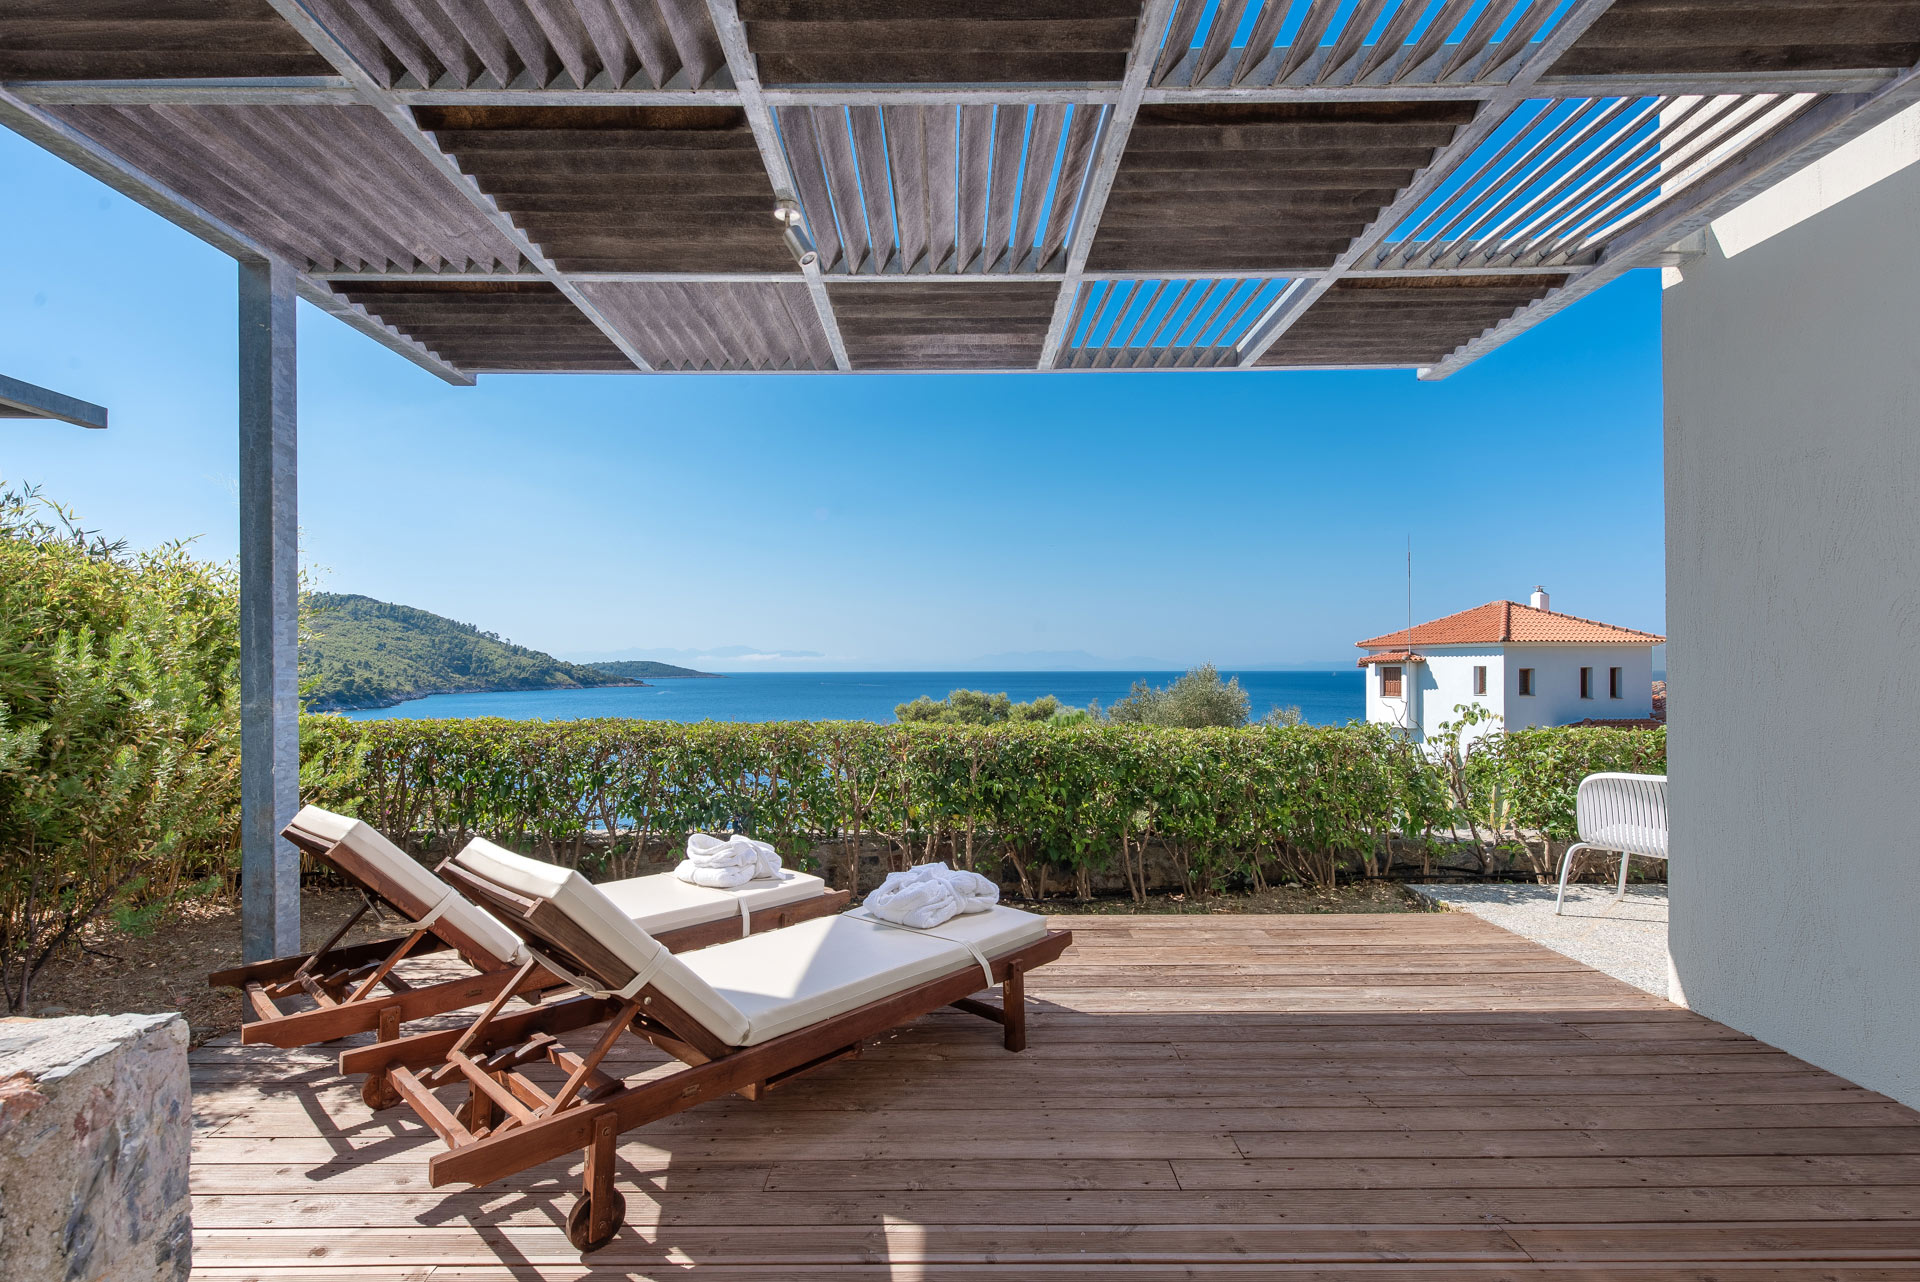 skopelos hotels adrina resort 1 beroom 1 level villa 350